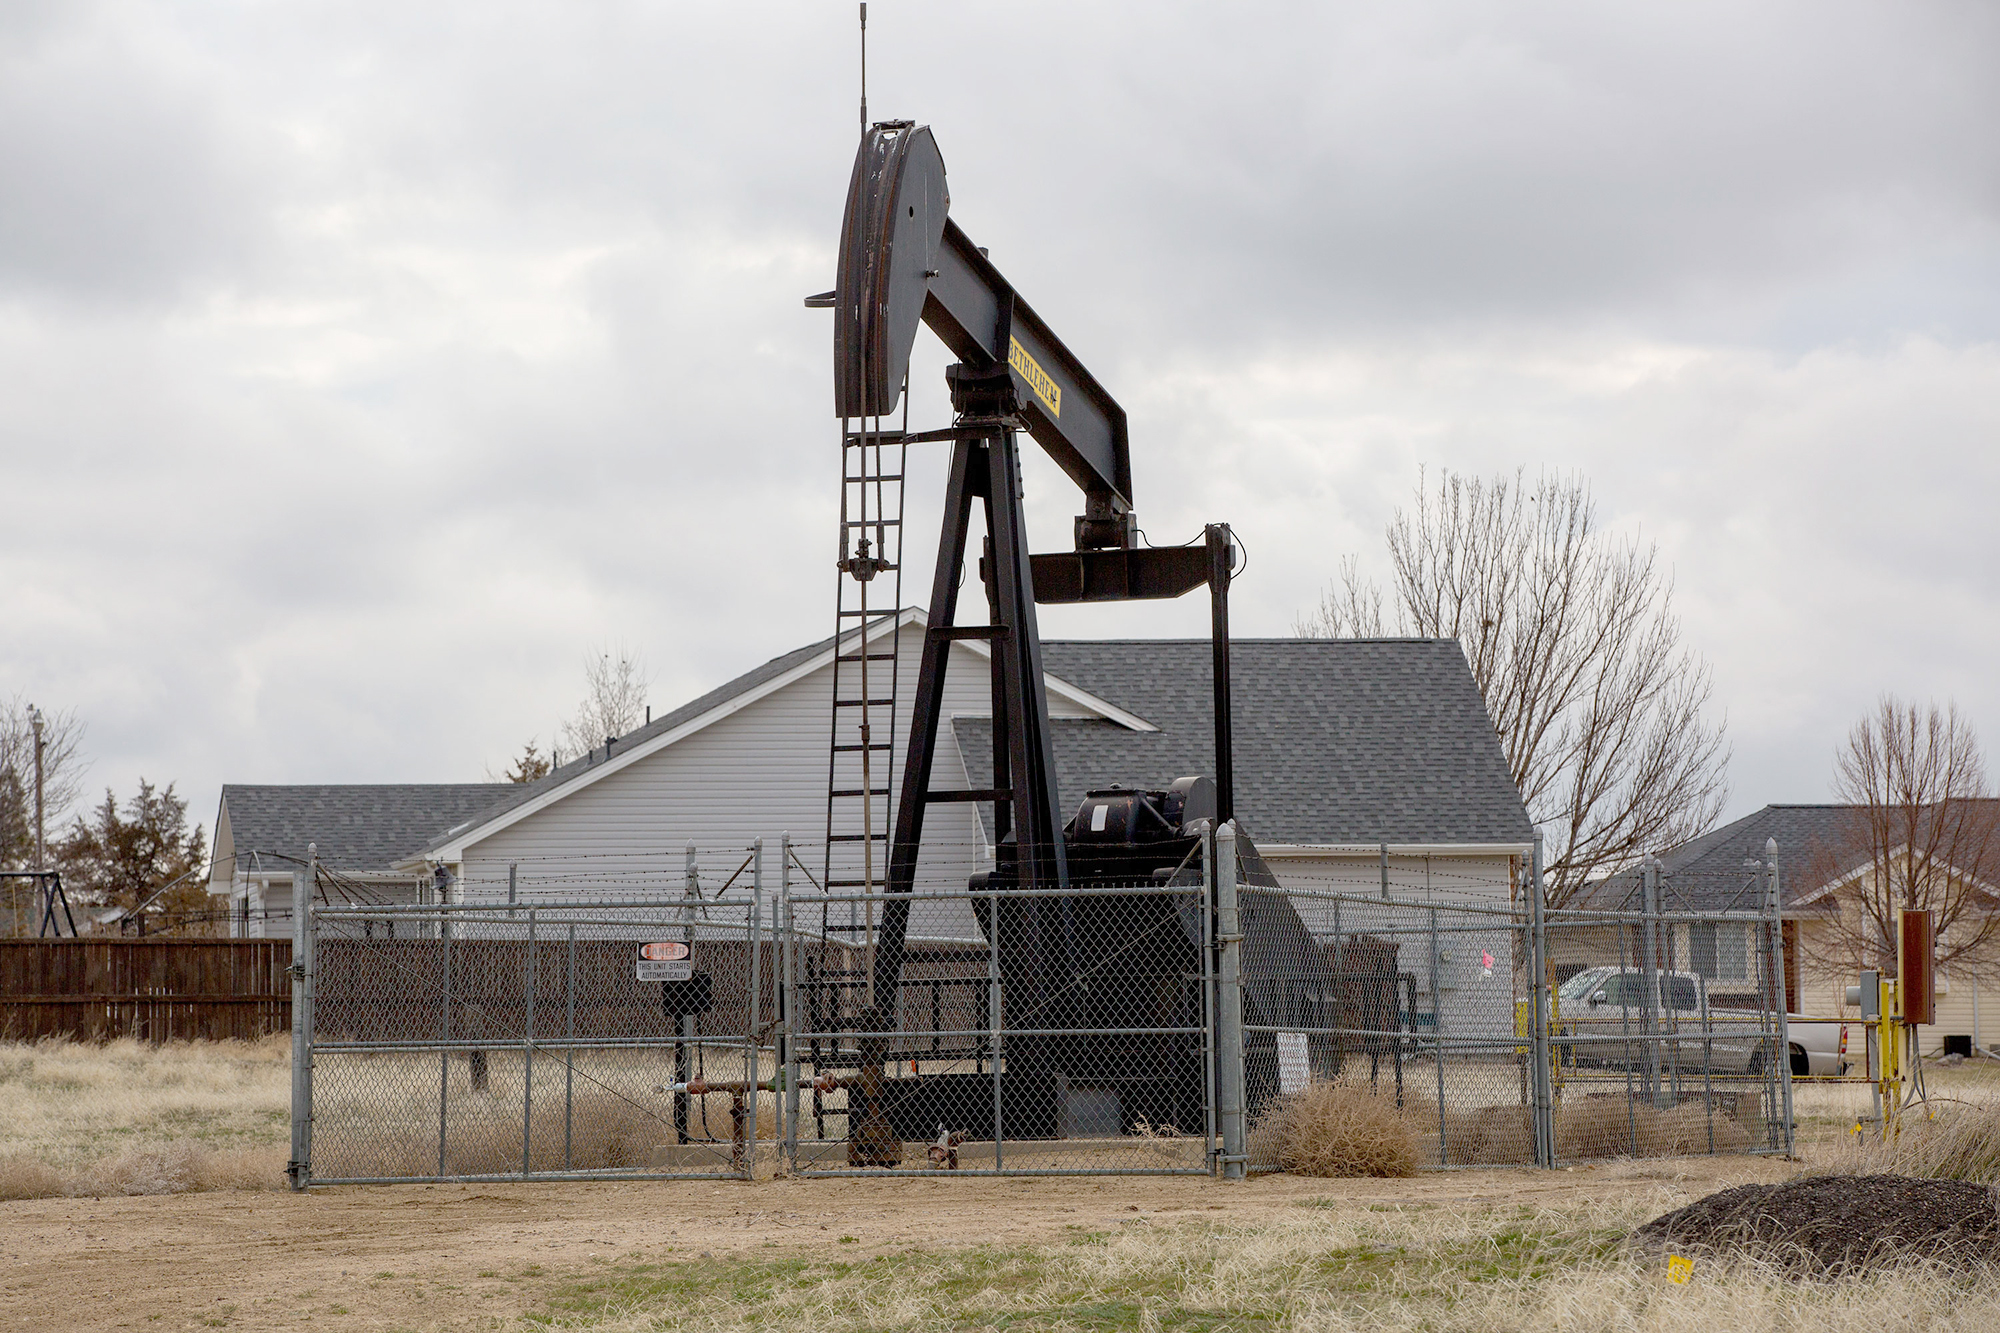 Photo: Weld County Oil And Gas Near Homes 2 HV